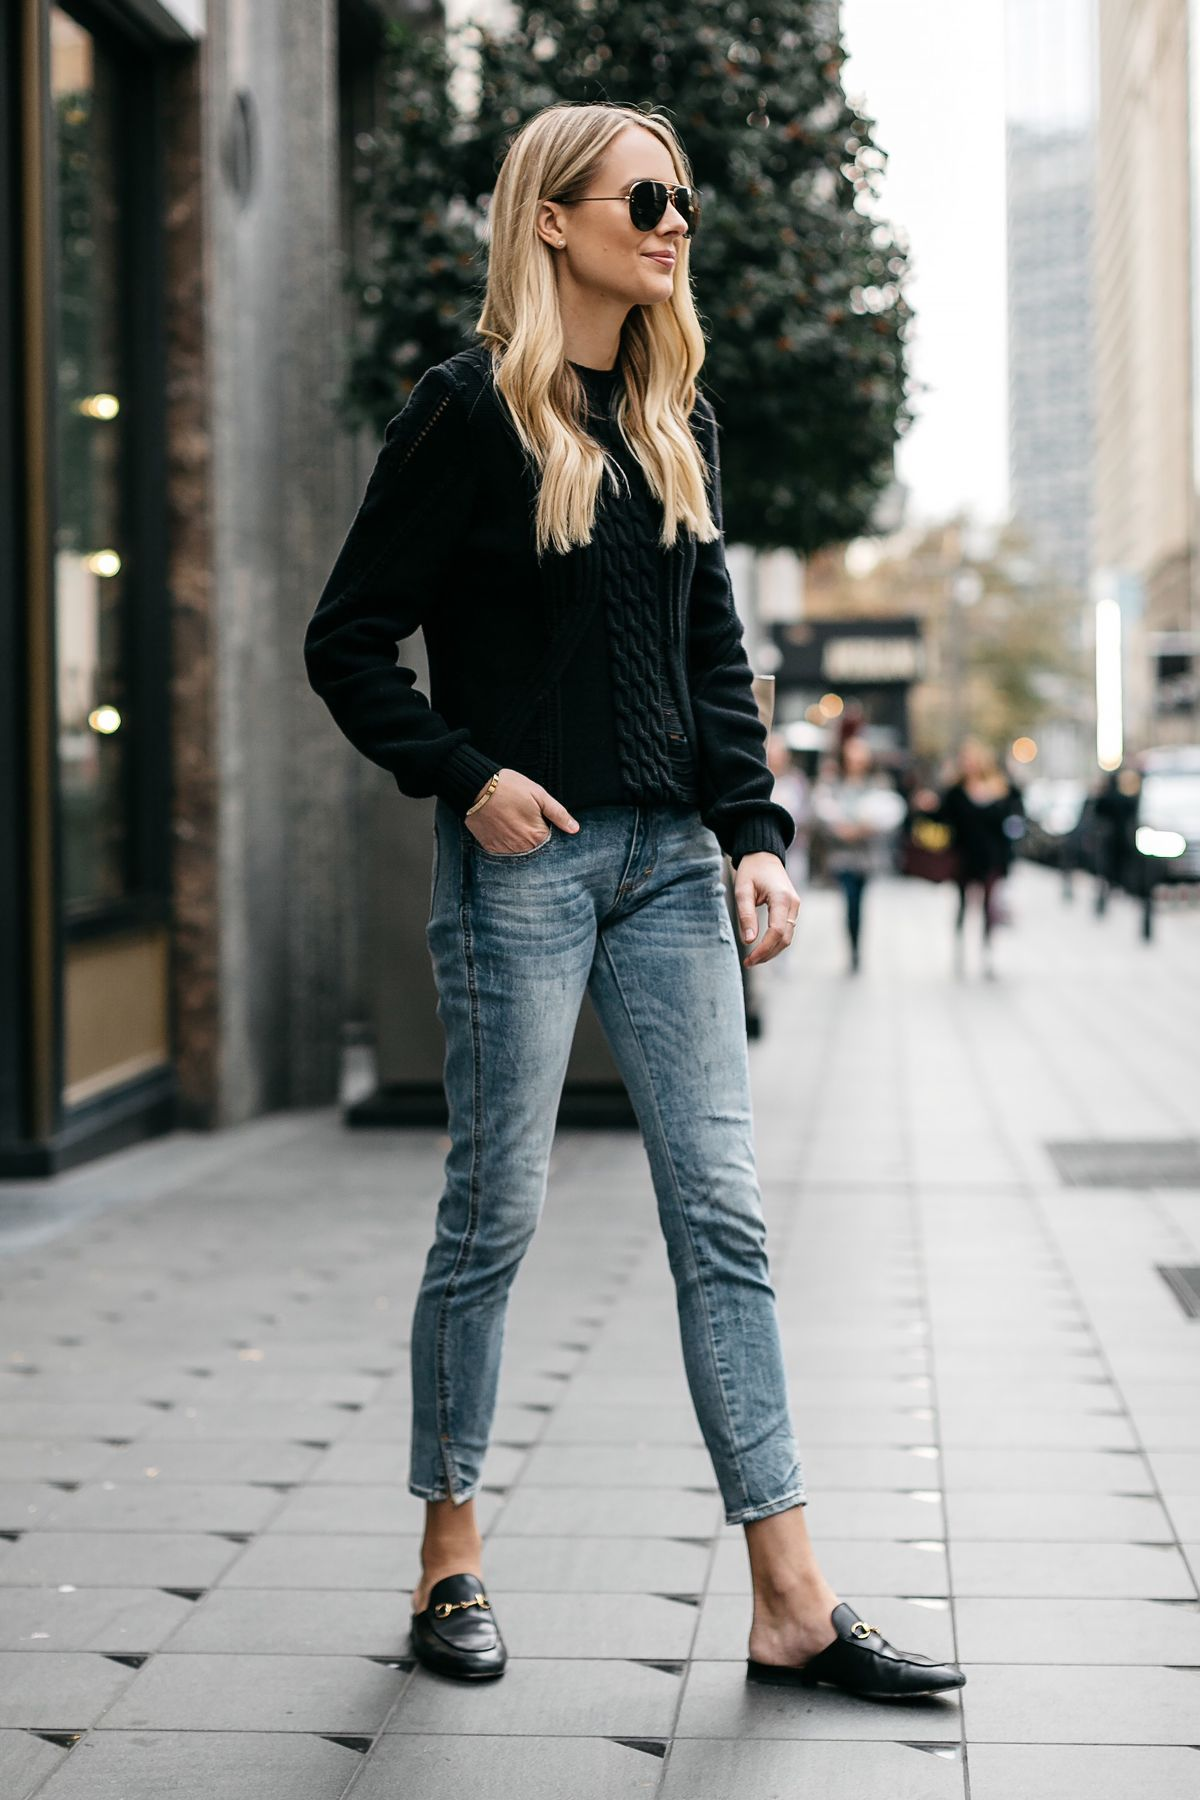 bc85530fb411 Blonde Woman Wearing Black Sweater Denim Jeans Outfit Frame Black Cable  Knit Sweater Denim Split Hem Skinny Jeans Gucci Loafer Mules Fashion  Jackson Dallas ...